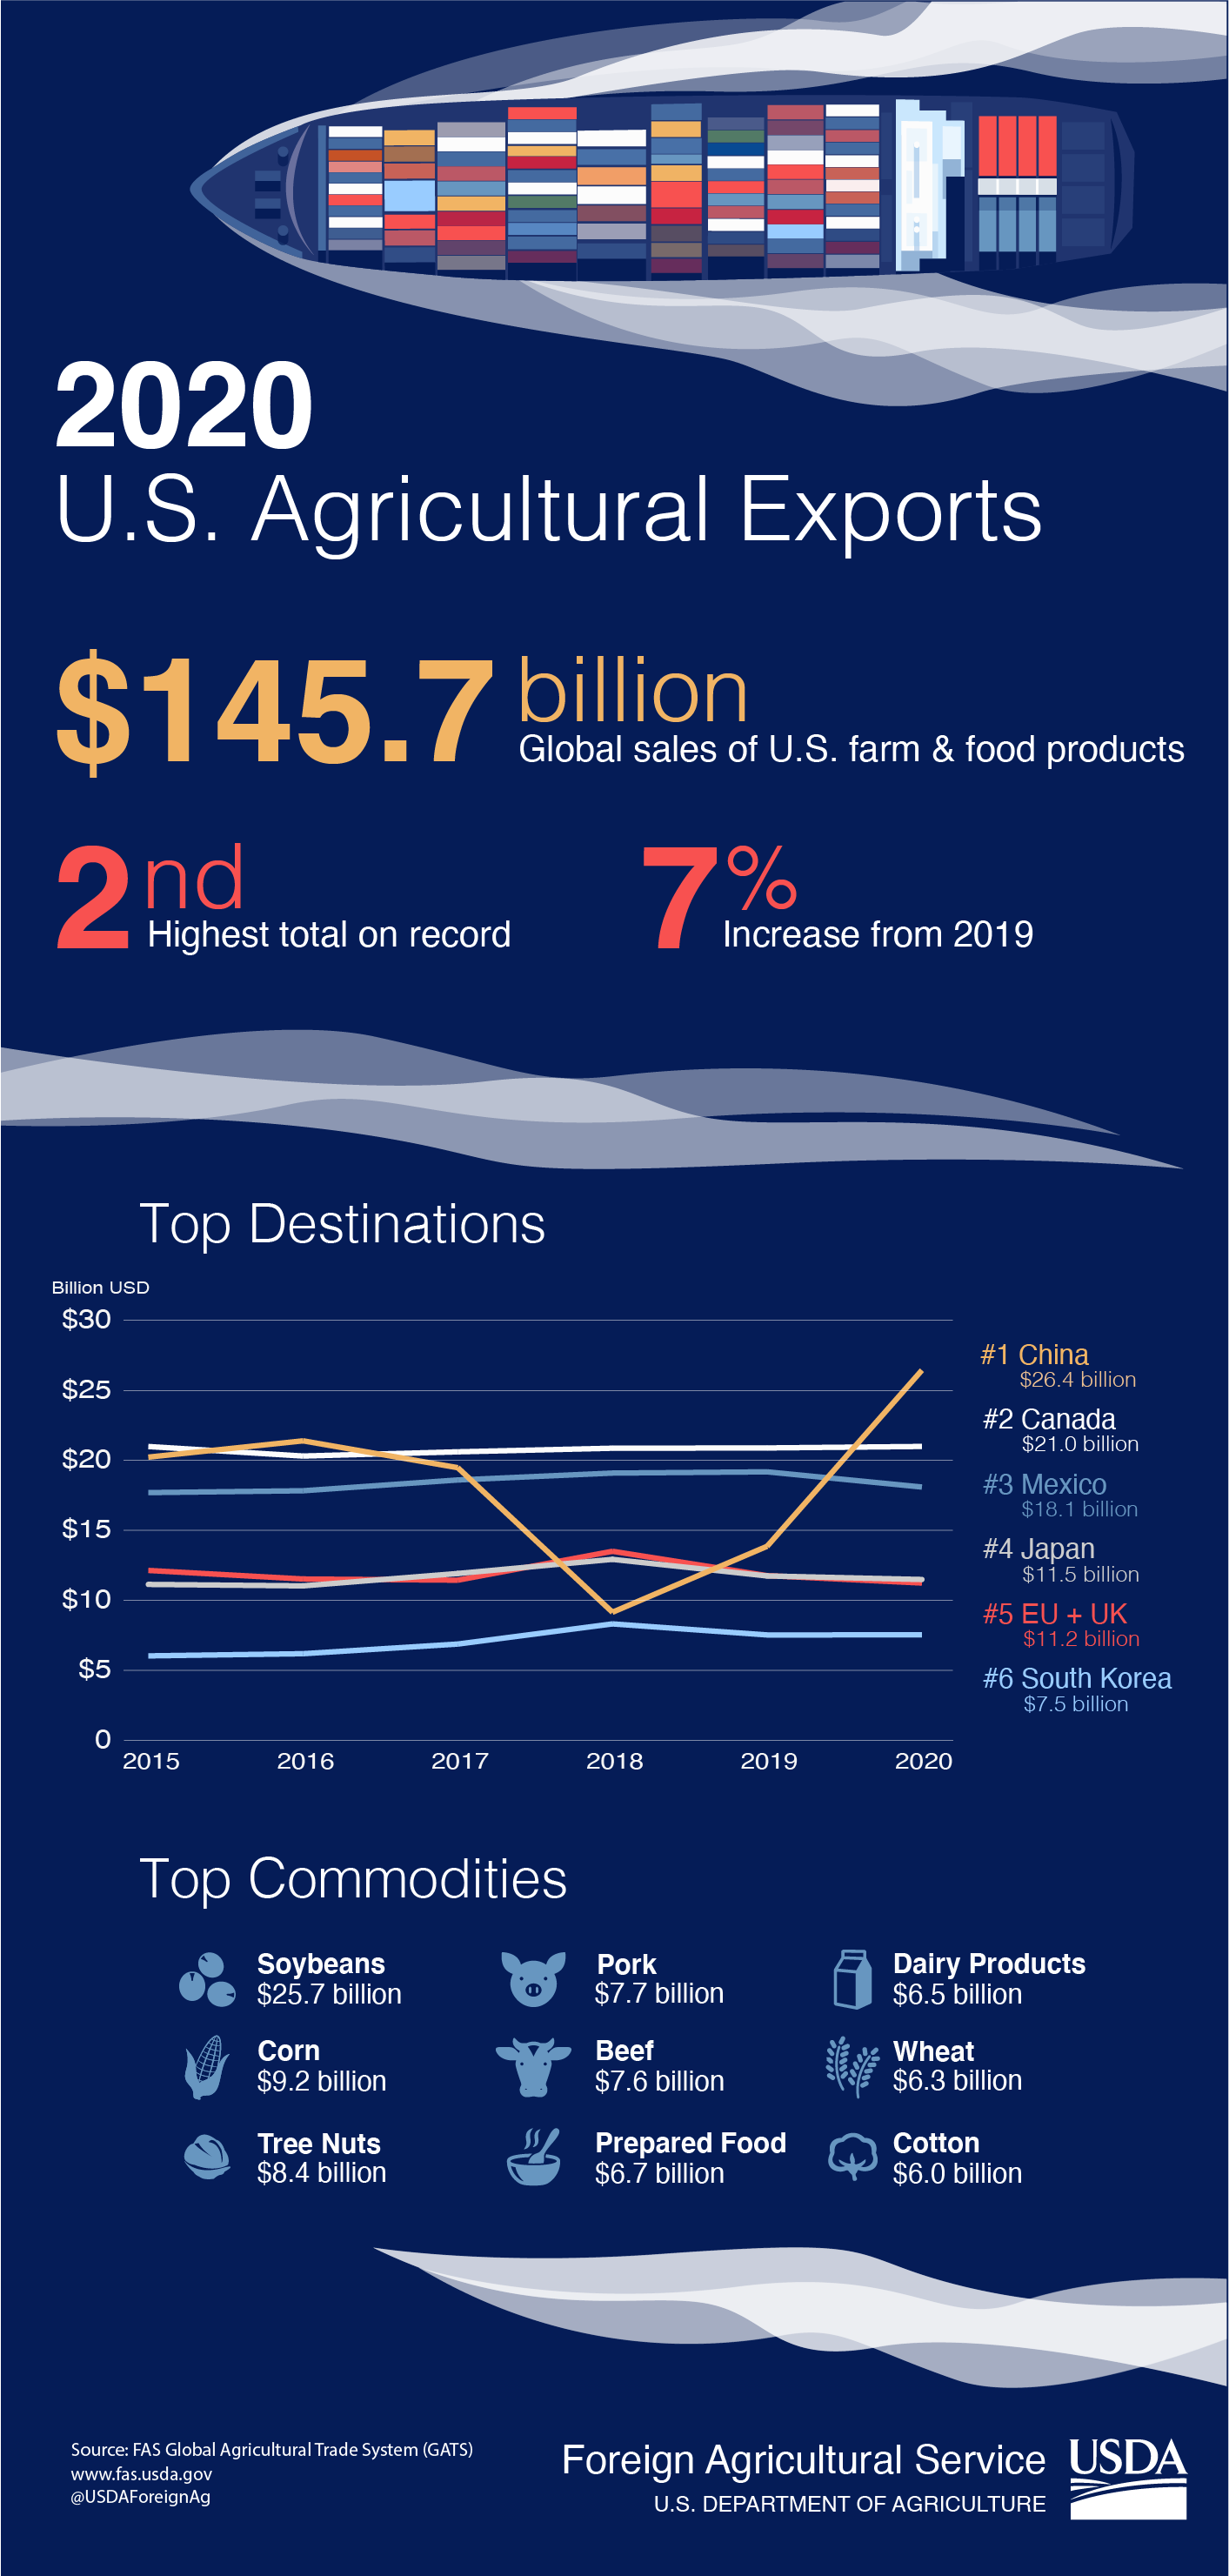 Inforgraphic discussing U.S agricultural exports in 2020.  Total exports were $145.7 billion.